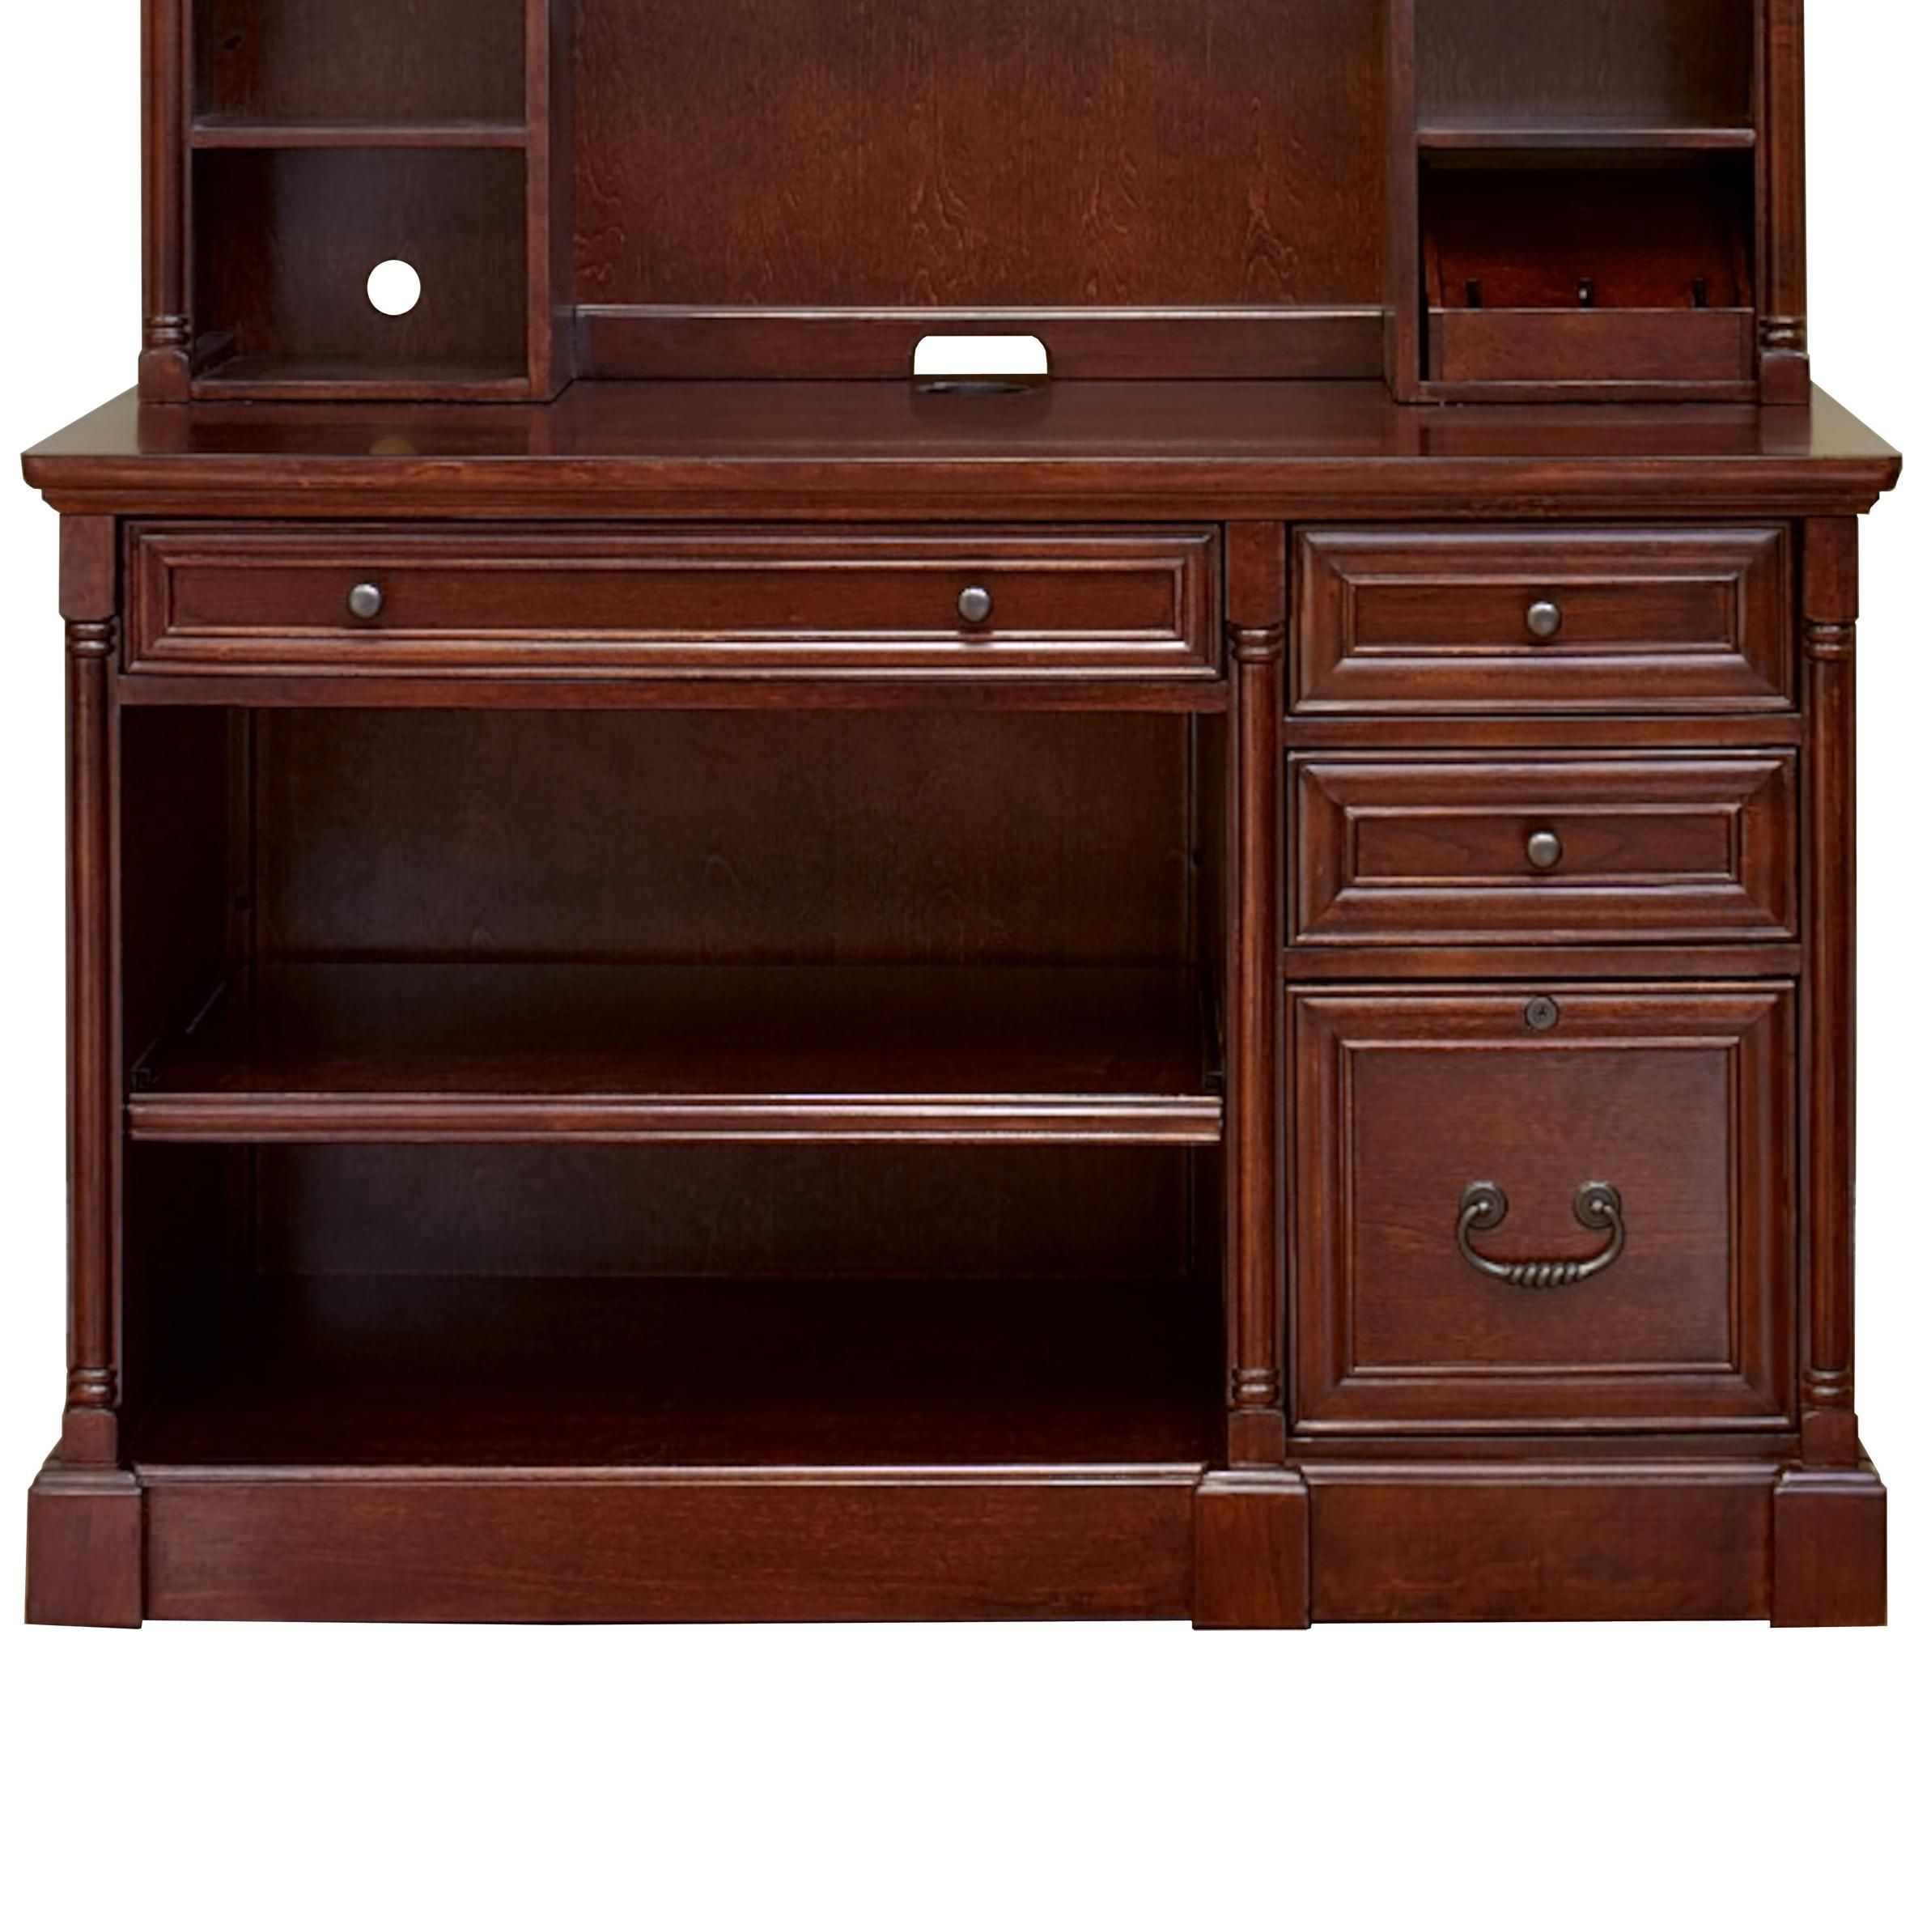 Mount View Credenza by kathy ireland Home by